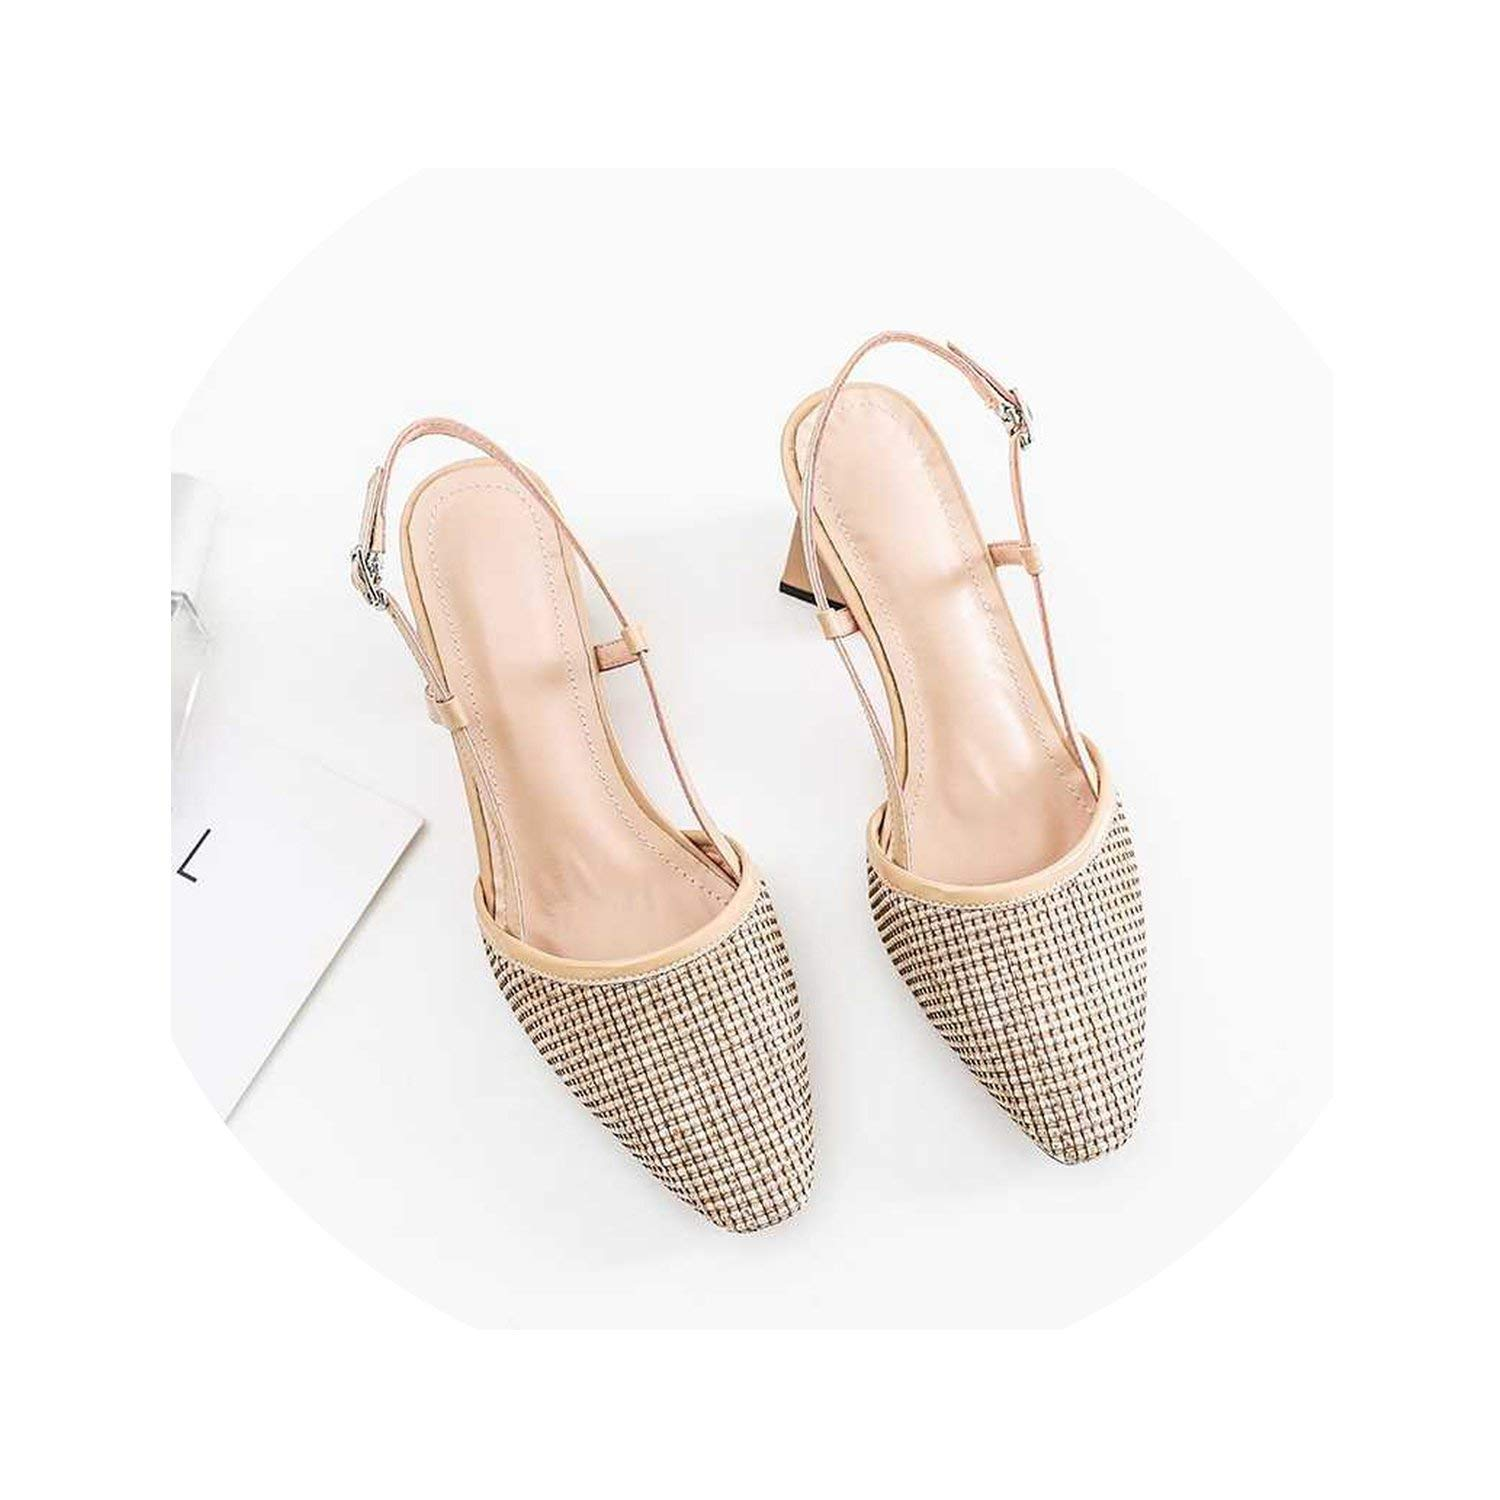 Beige I Need-You Genuine Leather Hollow Round Toe Buckle Straps Slingback Women Sandals high Heels Summer Sun Predection shoes L88